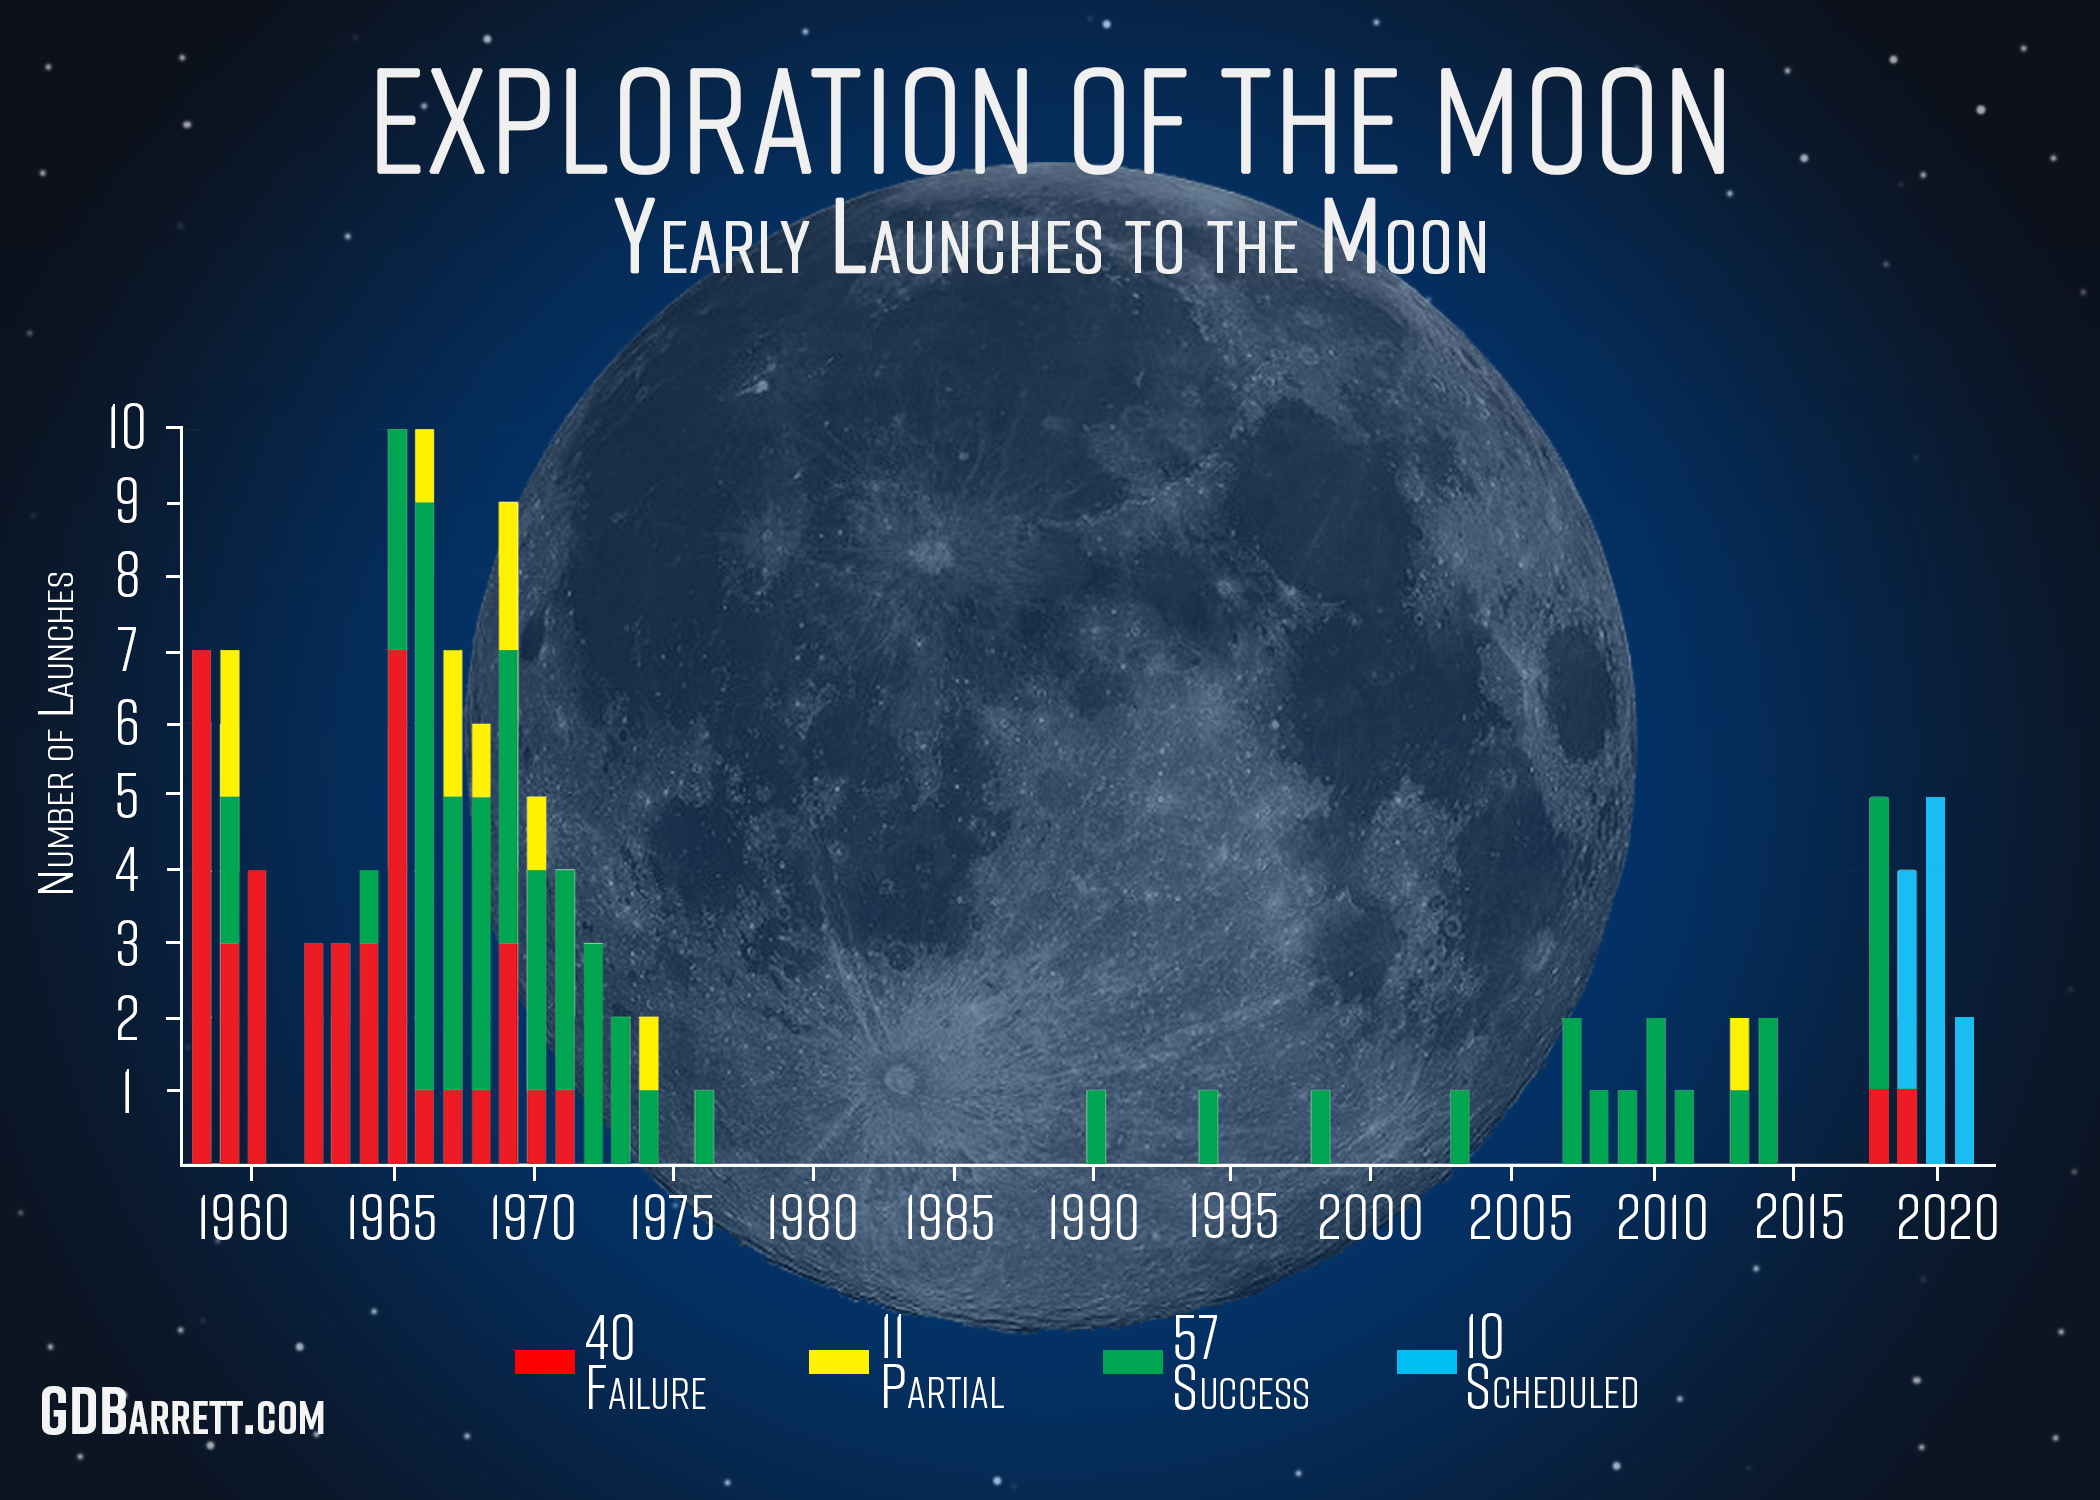 Moon_Exploration_LaunchHist_2019.png